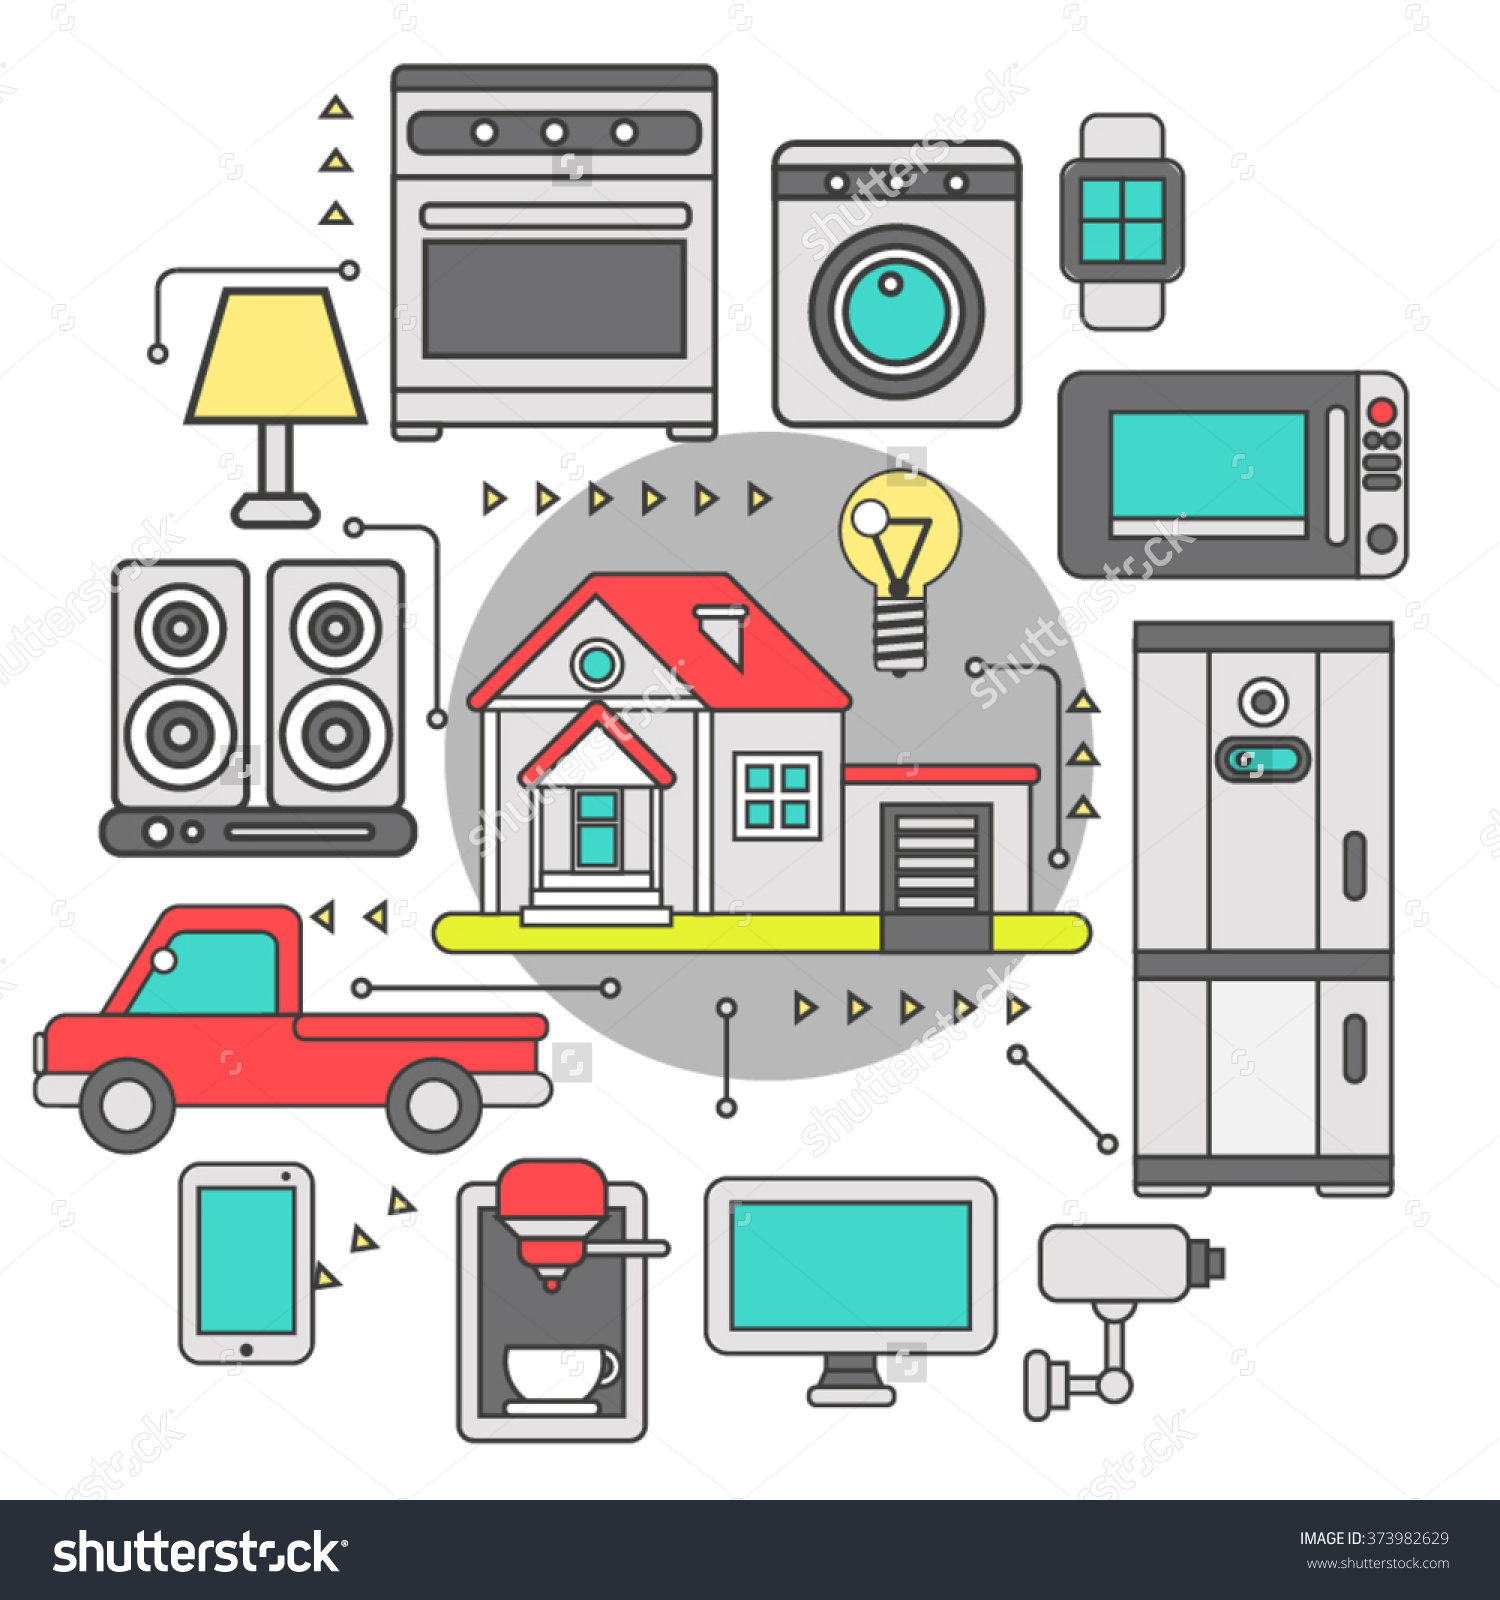 Smart Home Iot Internet Things Control Stock Vector 373982629.